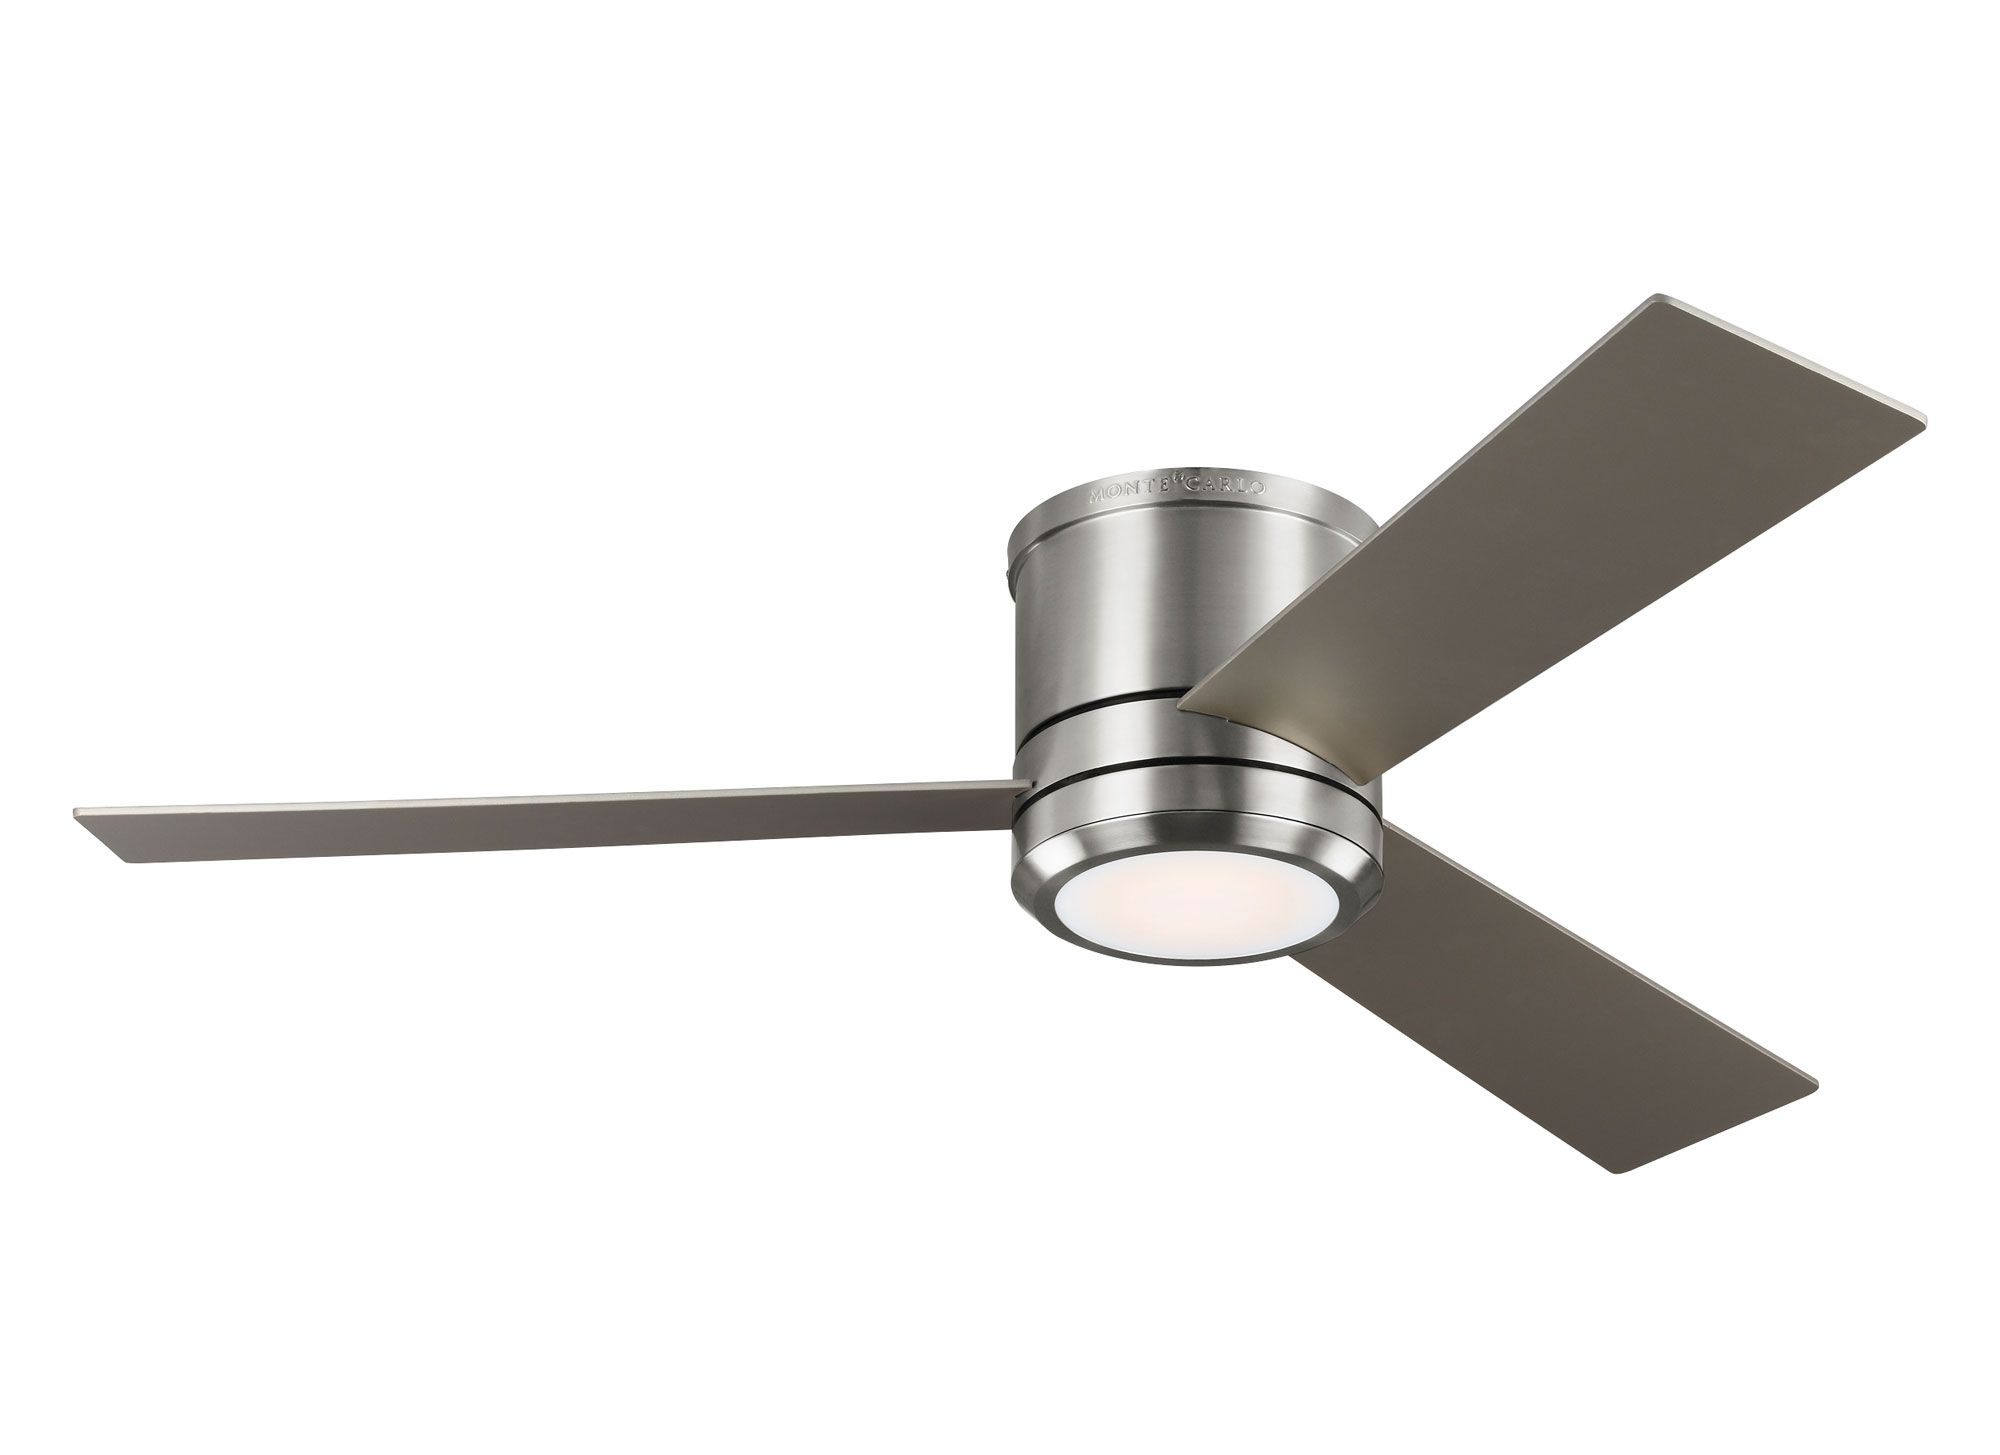 Clarity Max Ceiling Fan with Light is a larger and more powerful